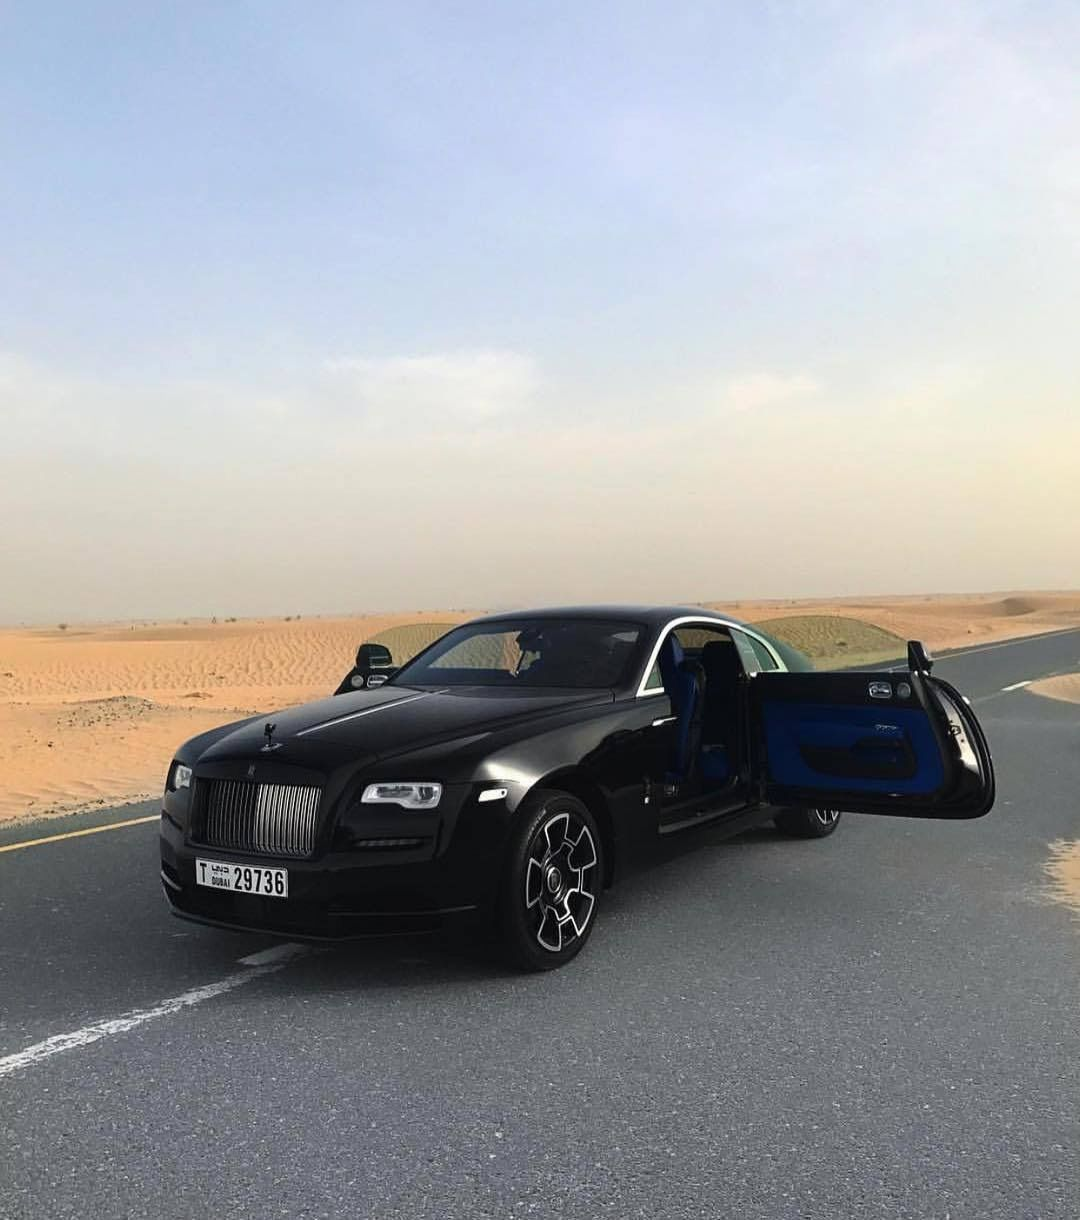 Rr Wraith, Sports Car, Classic